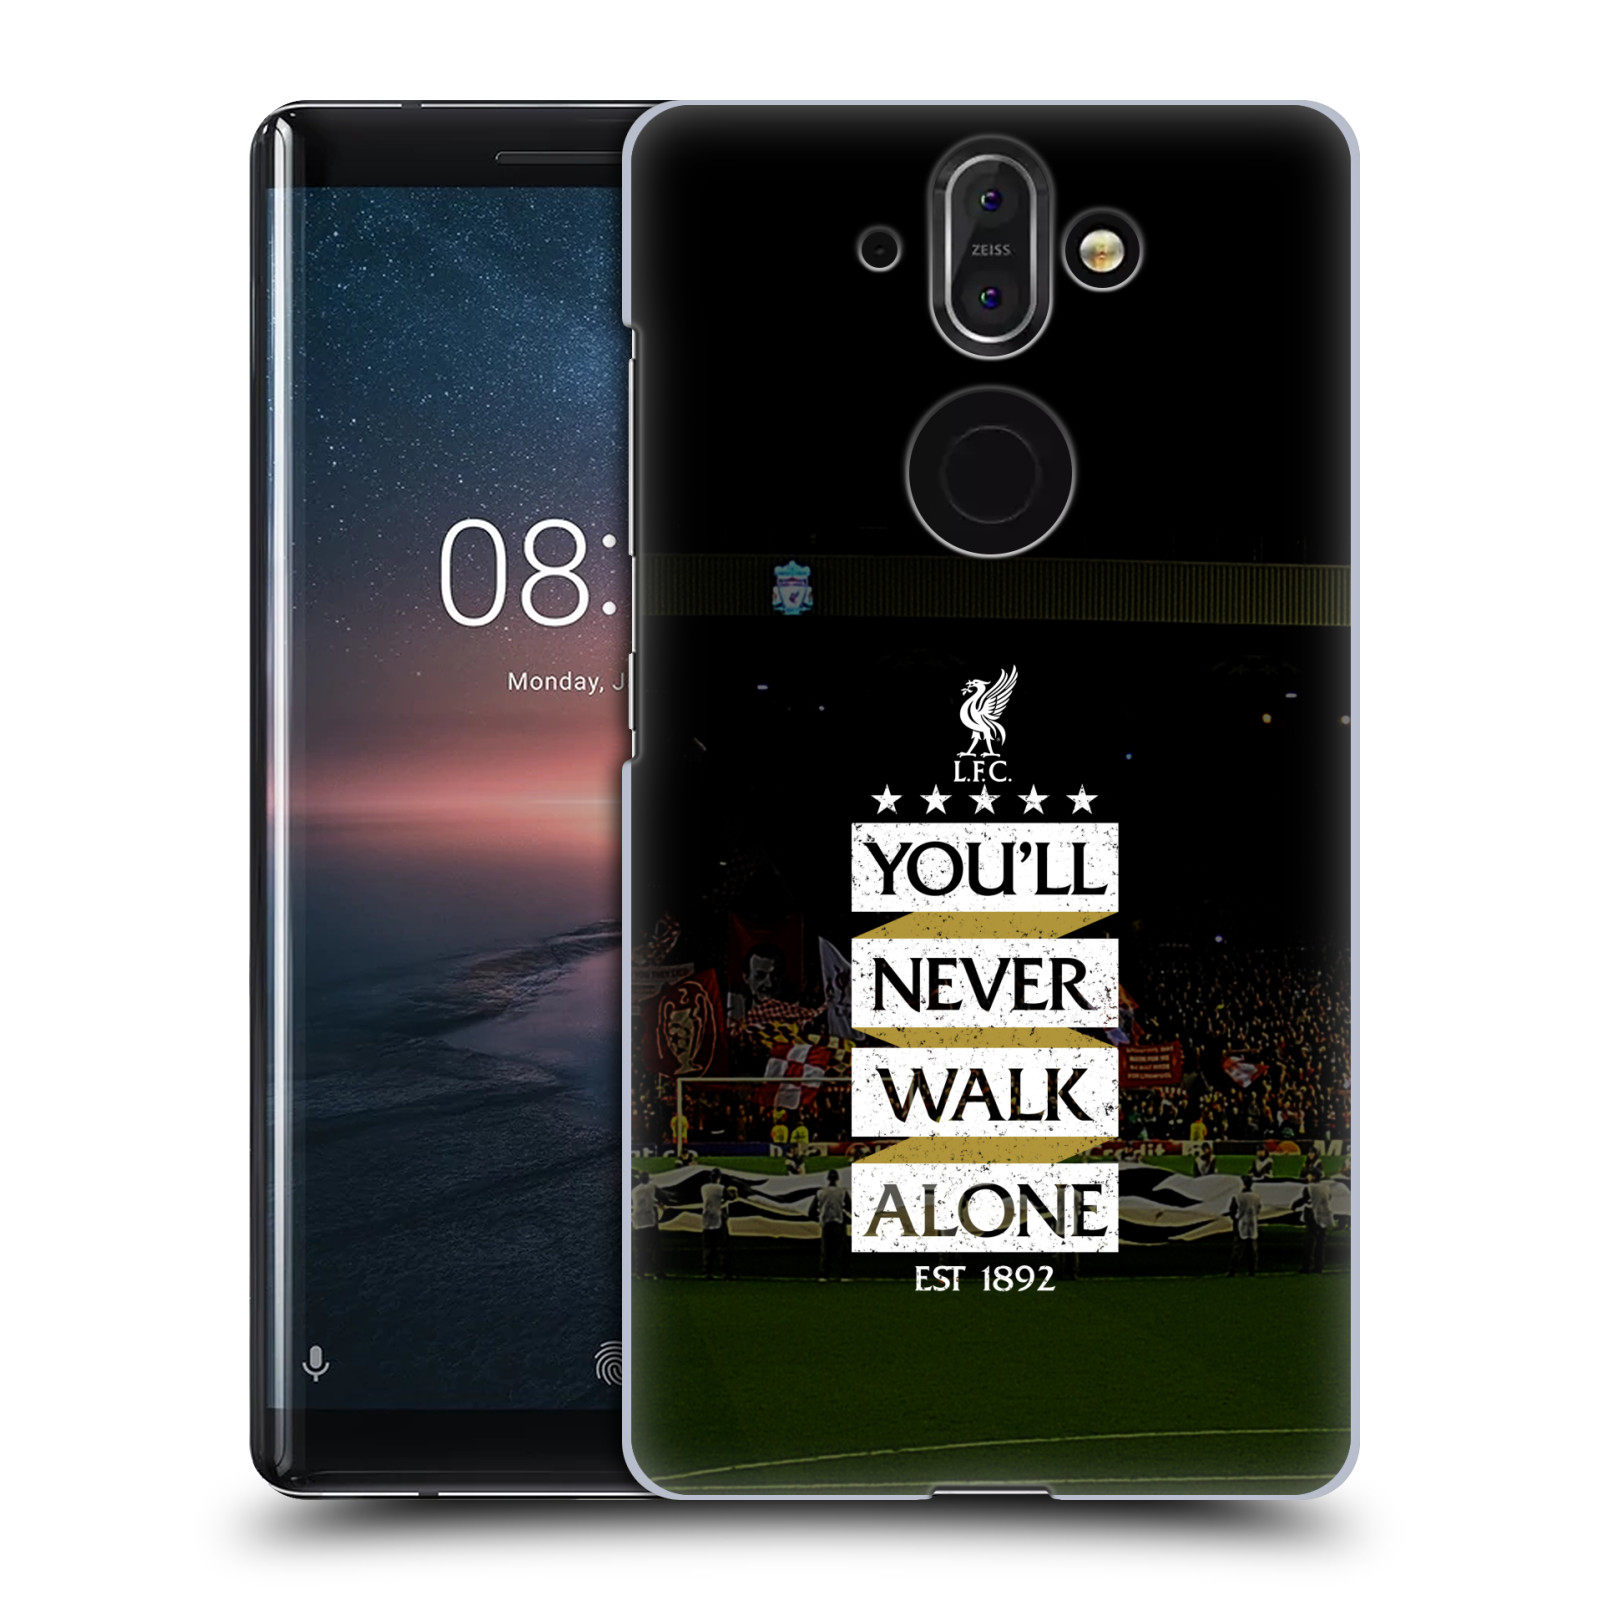 Plastové pouzdro na mobil Nokia 8 Sirocco - Head Case - LFC You'll Never Walk Alone